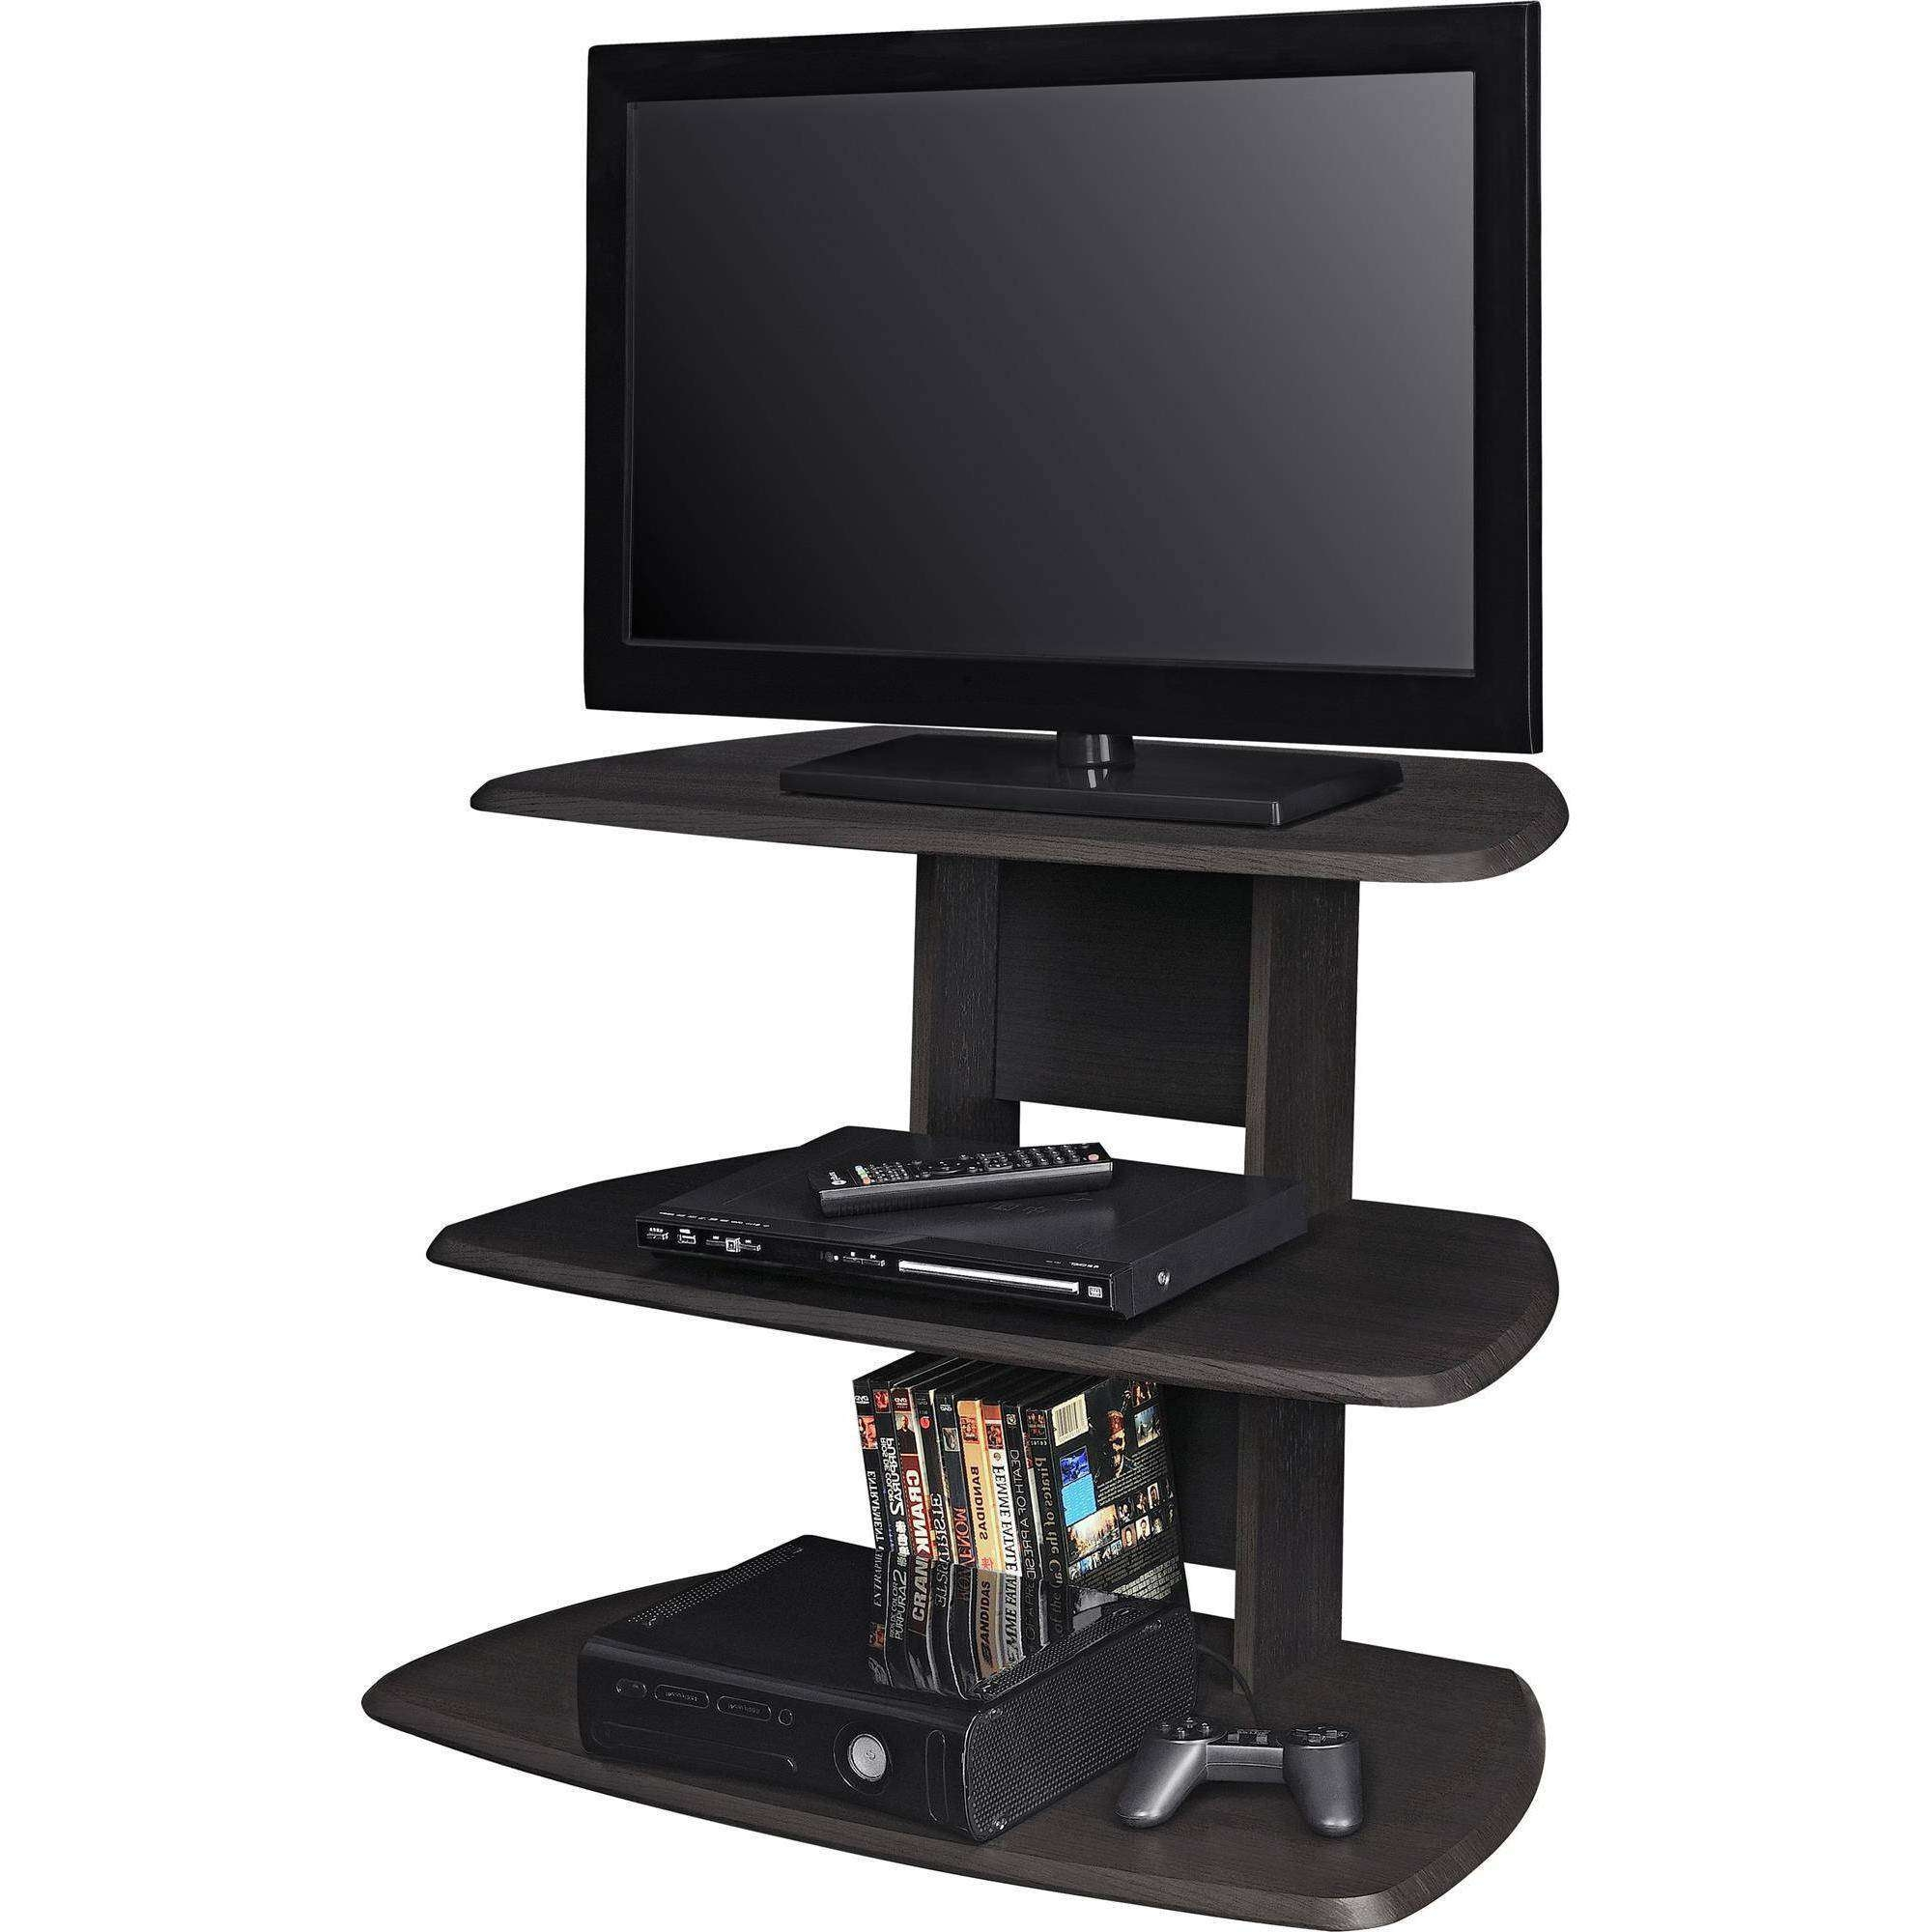 "Ameriwood Home Galaxy Ii Tv Stand For Tvs Up To 32"" Wide, Espresso Inside 32 Inch Tv Stands (View 13 of 15)"